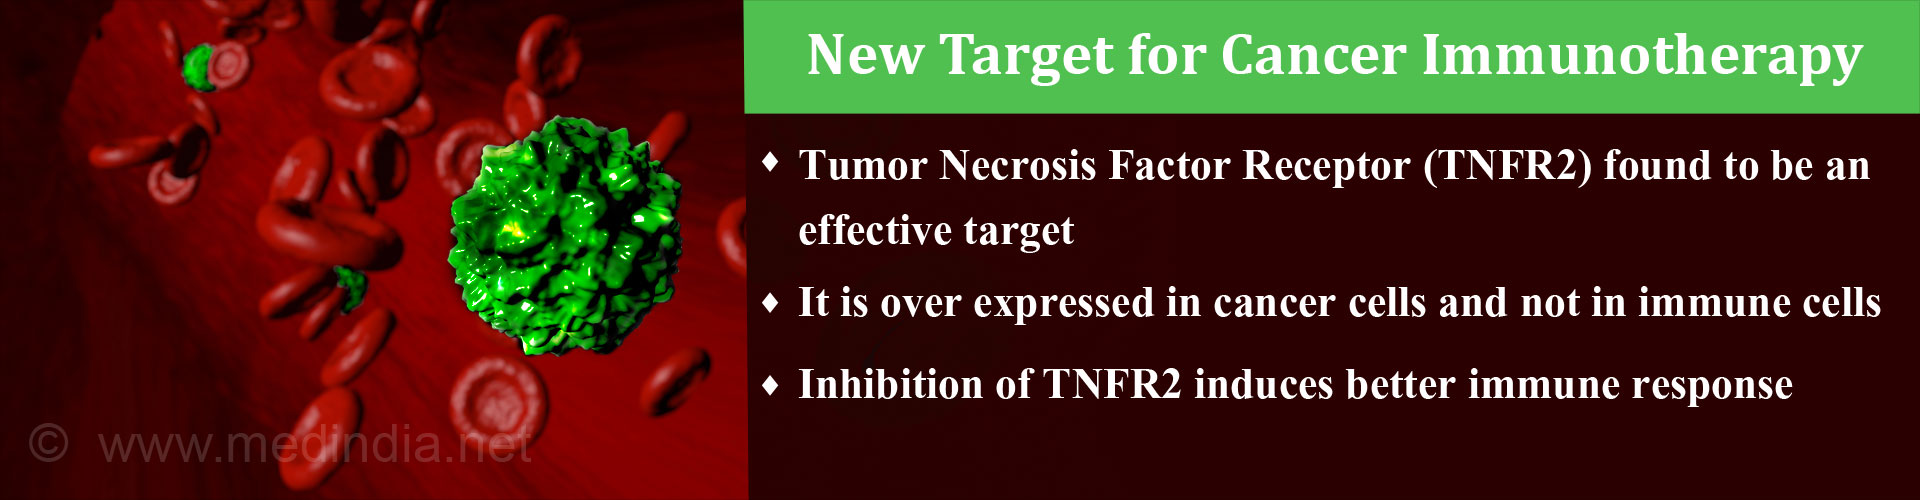 New Target for Cancer Immunotherapy Identified